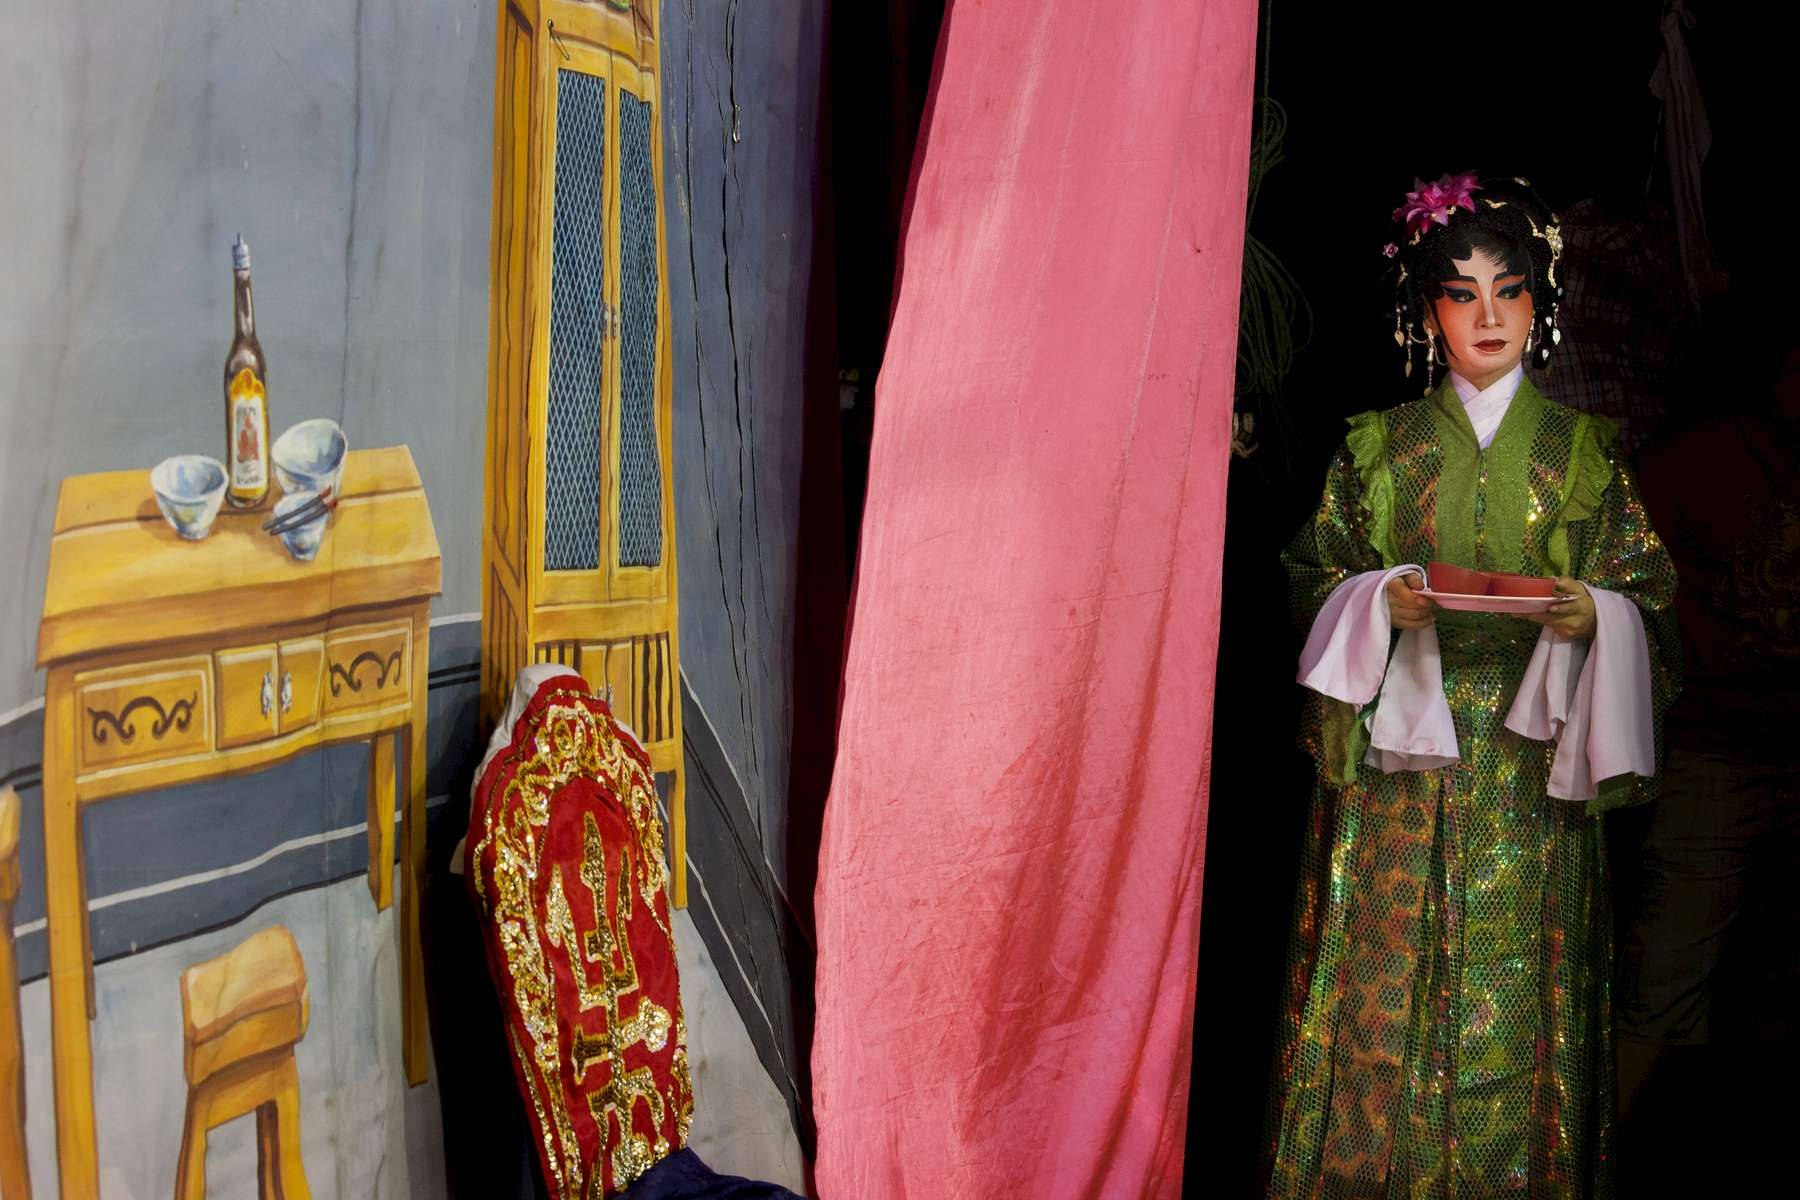 BANGKOK, THAILAND - JANUARY 25:  An actress with the Lao Yi Lai Heng Chinese opera  troupe waits to go onstage performing the Teochew (Chaozhou) opera at the Plub Plachai temple on January 25, 2012 in Bangkok, Thailand. The traditional Chinese art form involving music, singing, martial arts and acting has a history of more than 500 years. There are about 30 members working with the group doing specials shows all week to celebrate the Chinese New year. The Chinese opera is popular in many parts of China,  Malaysia, Singapore, Thailand and Macau .(Photo by Paula Bronstein/Getty Images)